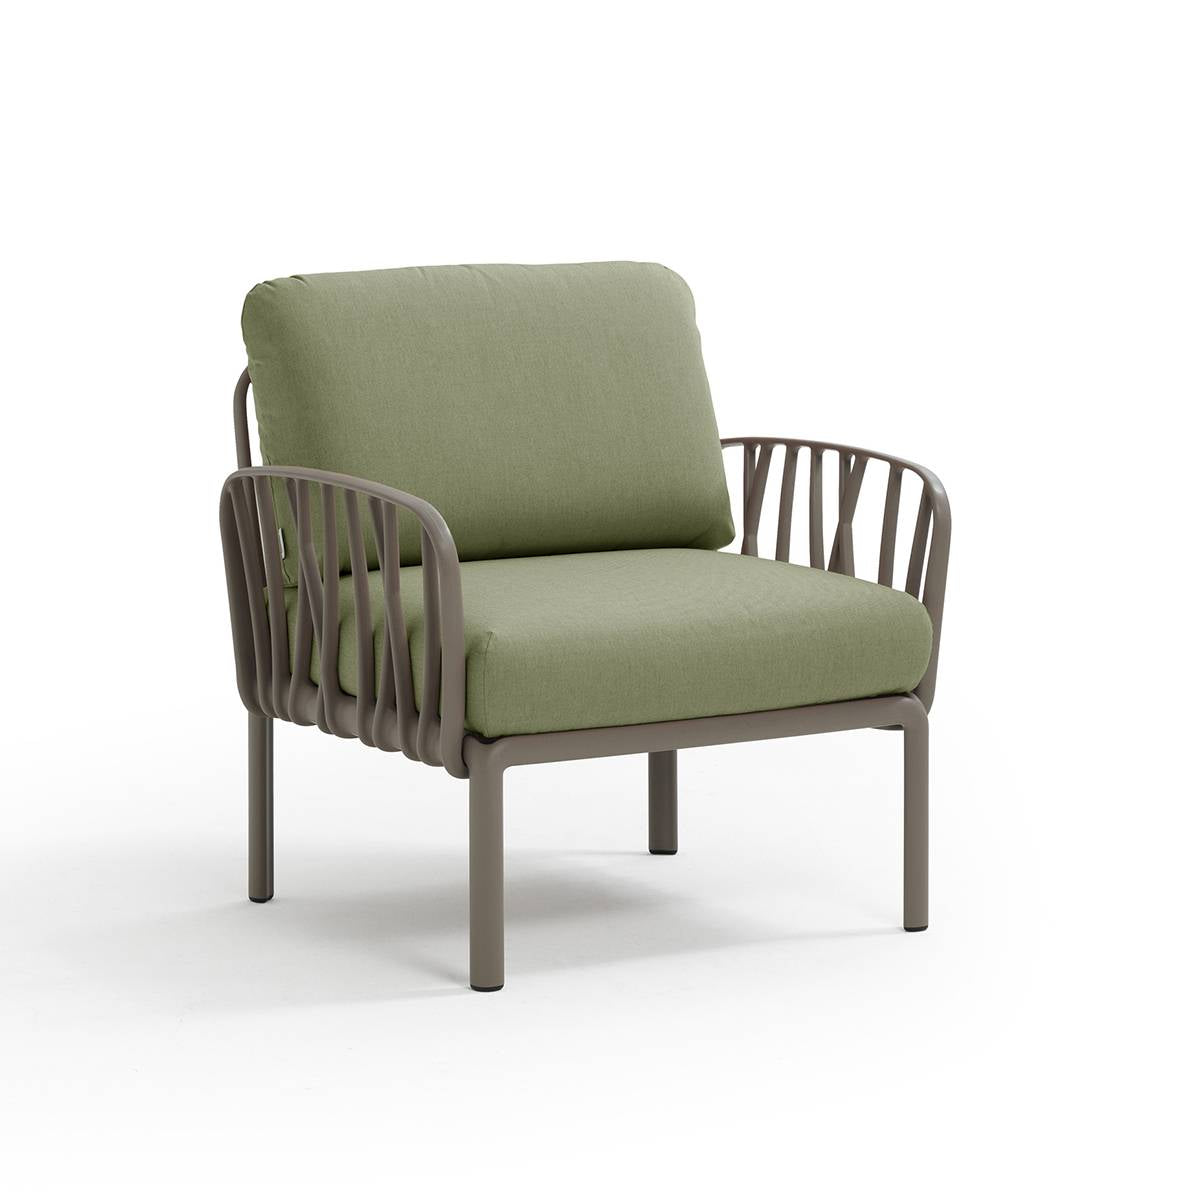 NARDI Komodo Outdoor Armchair